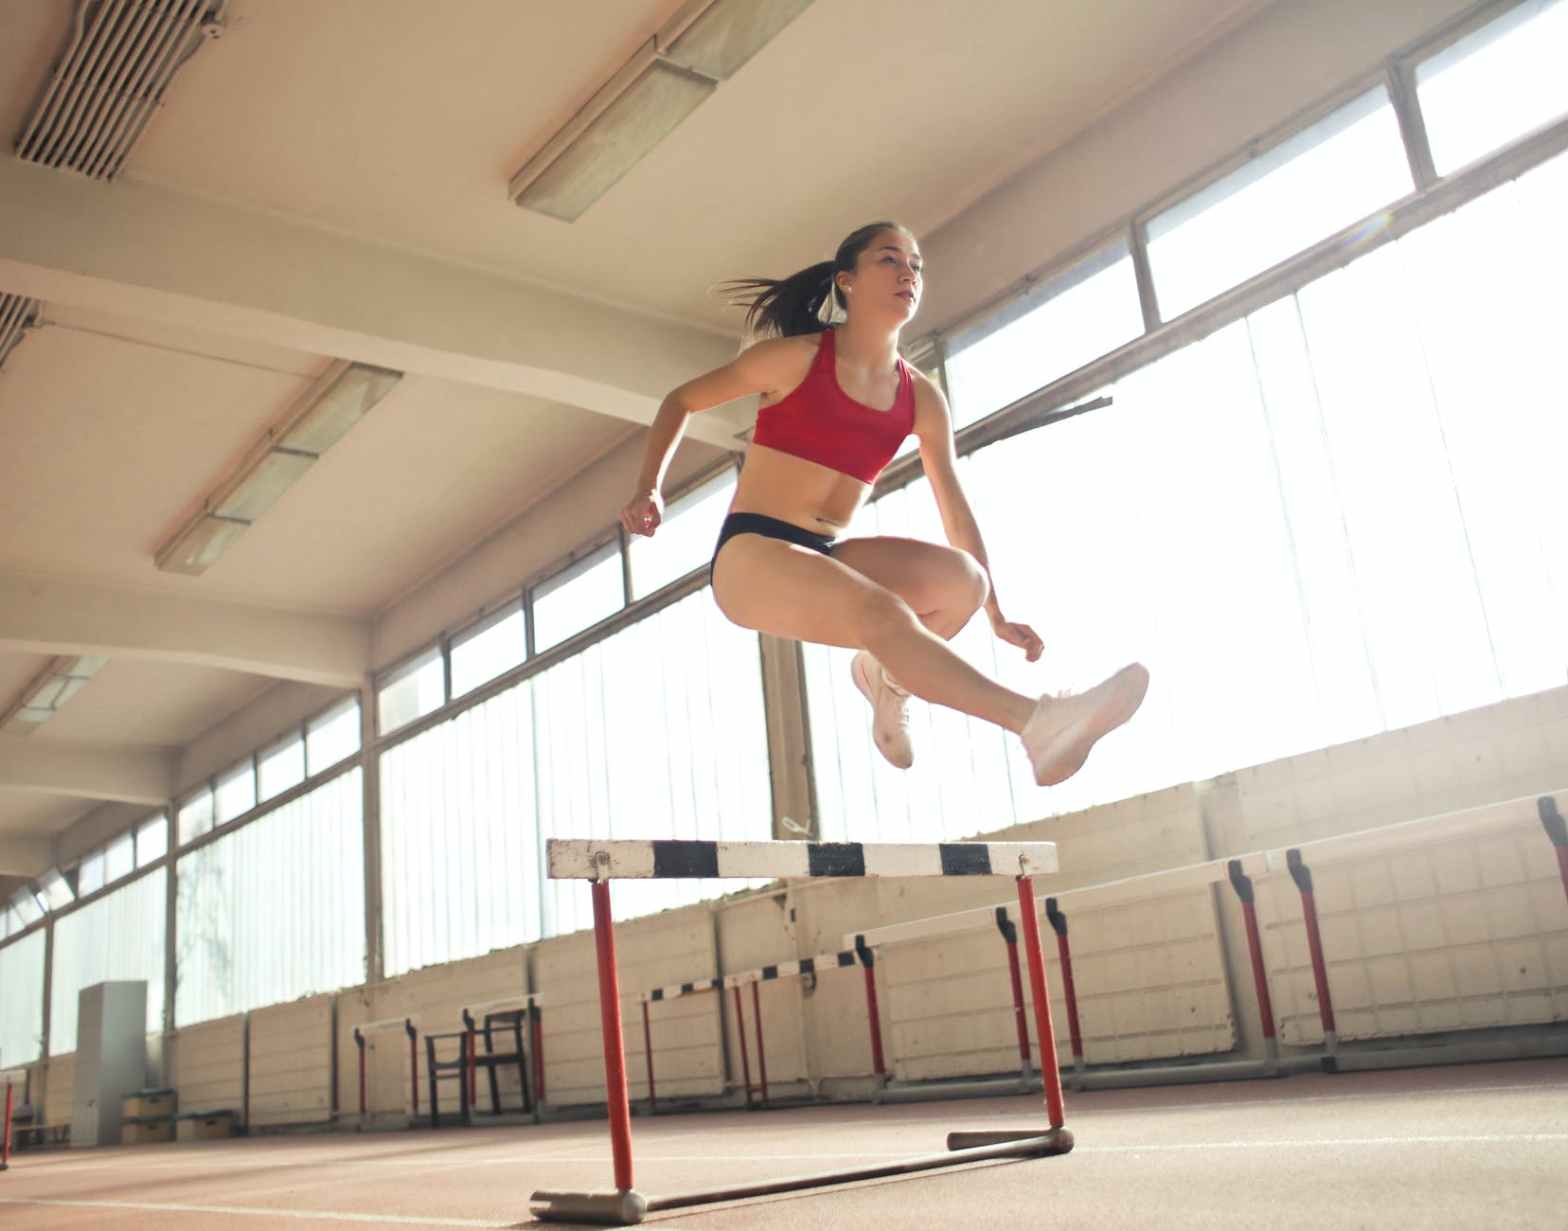 photo of a woman jumped on obstacle